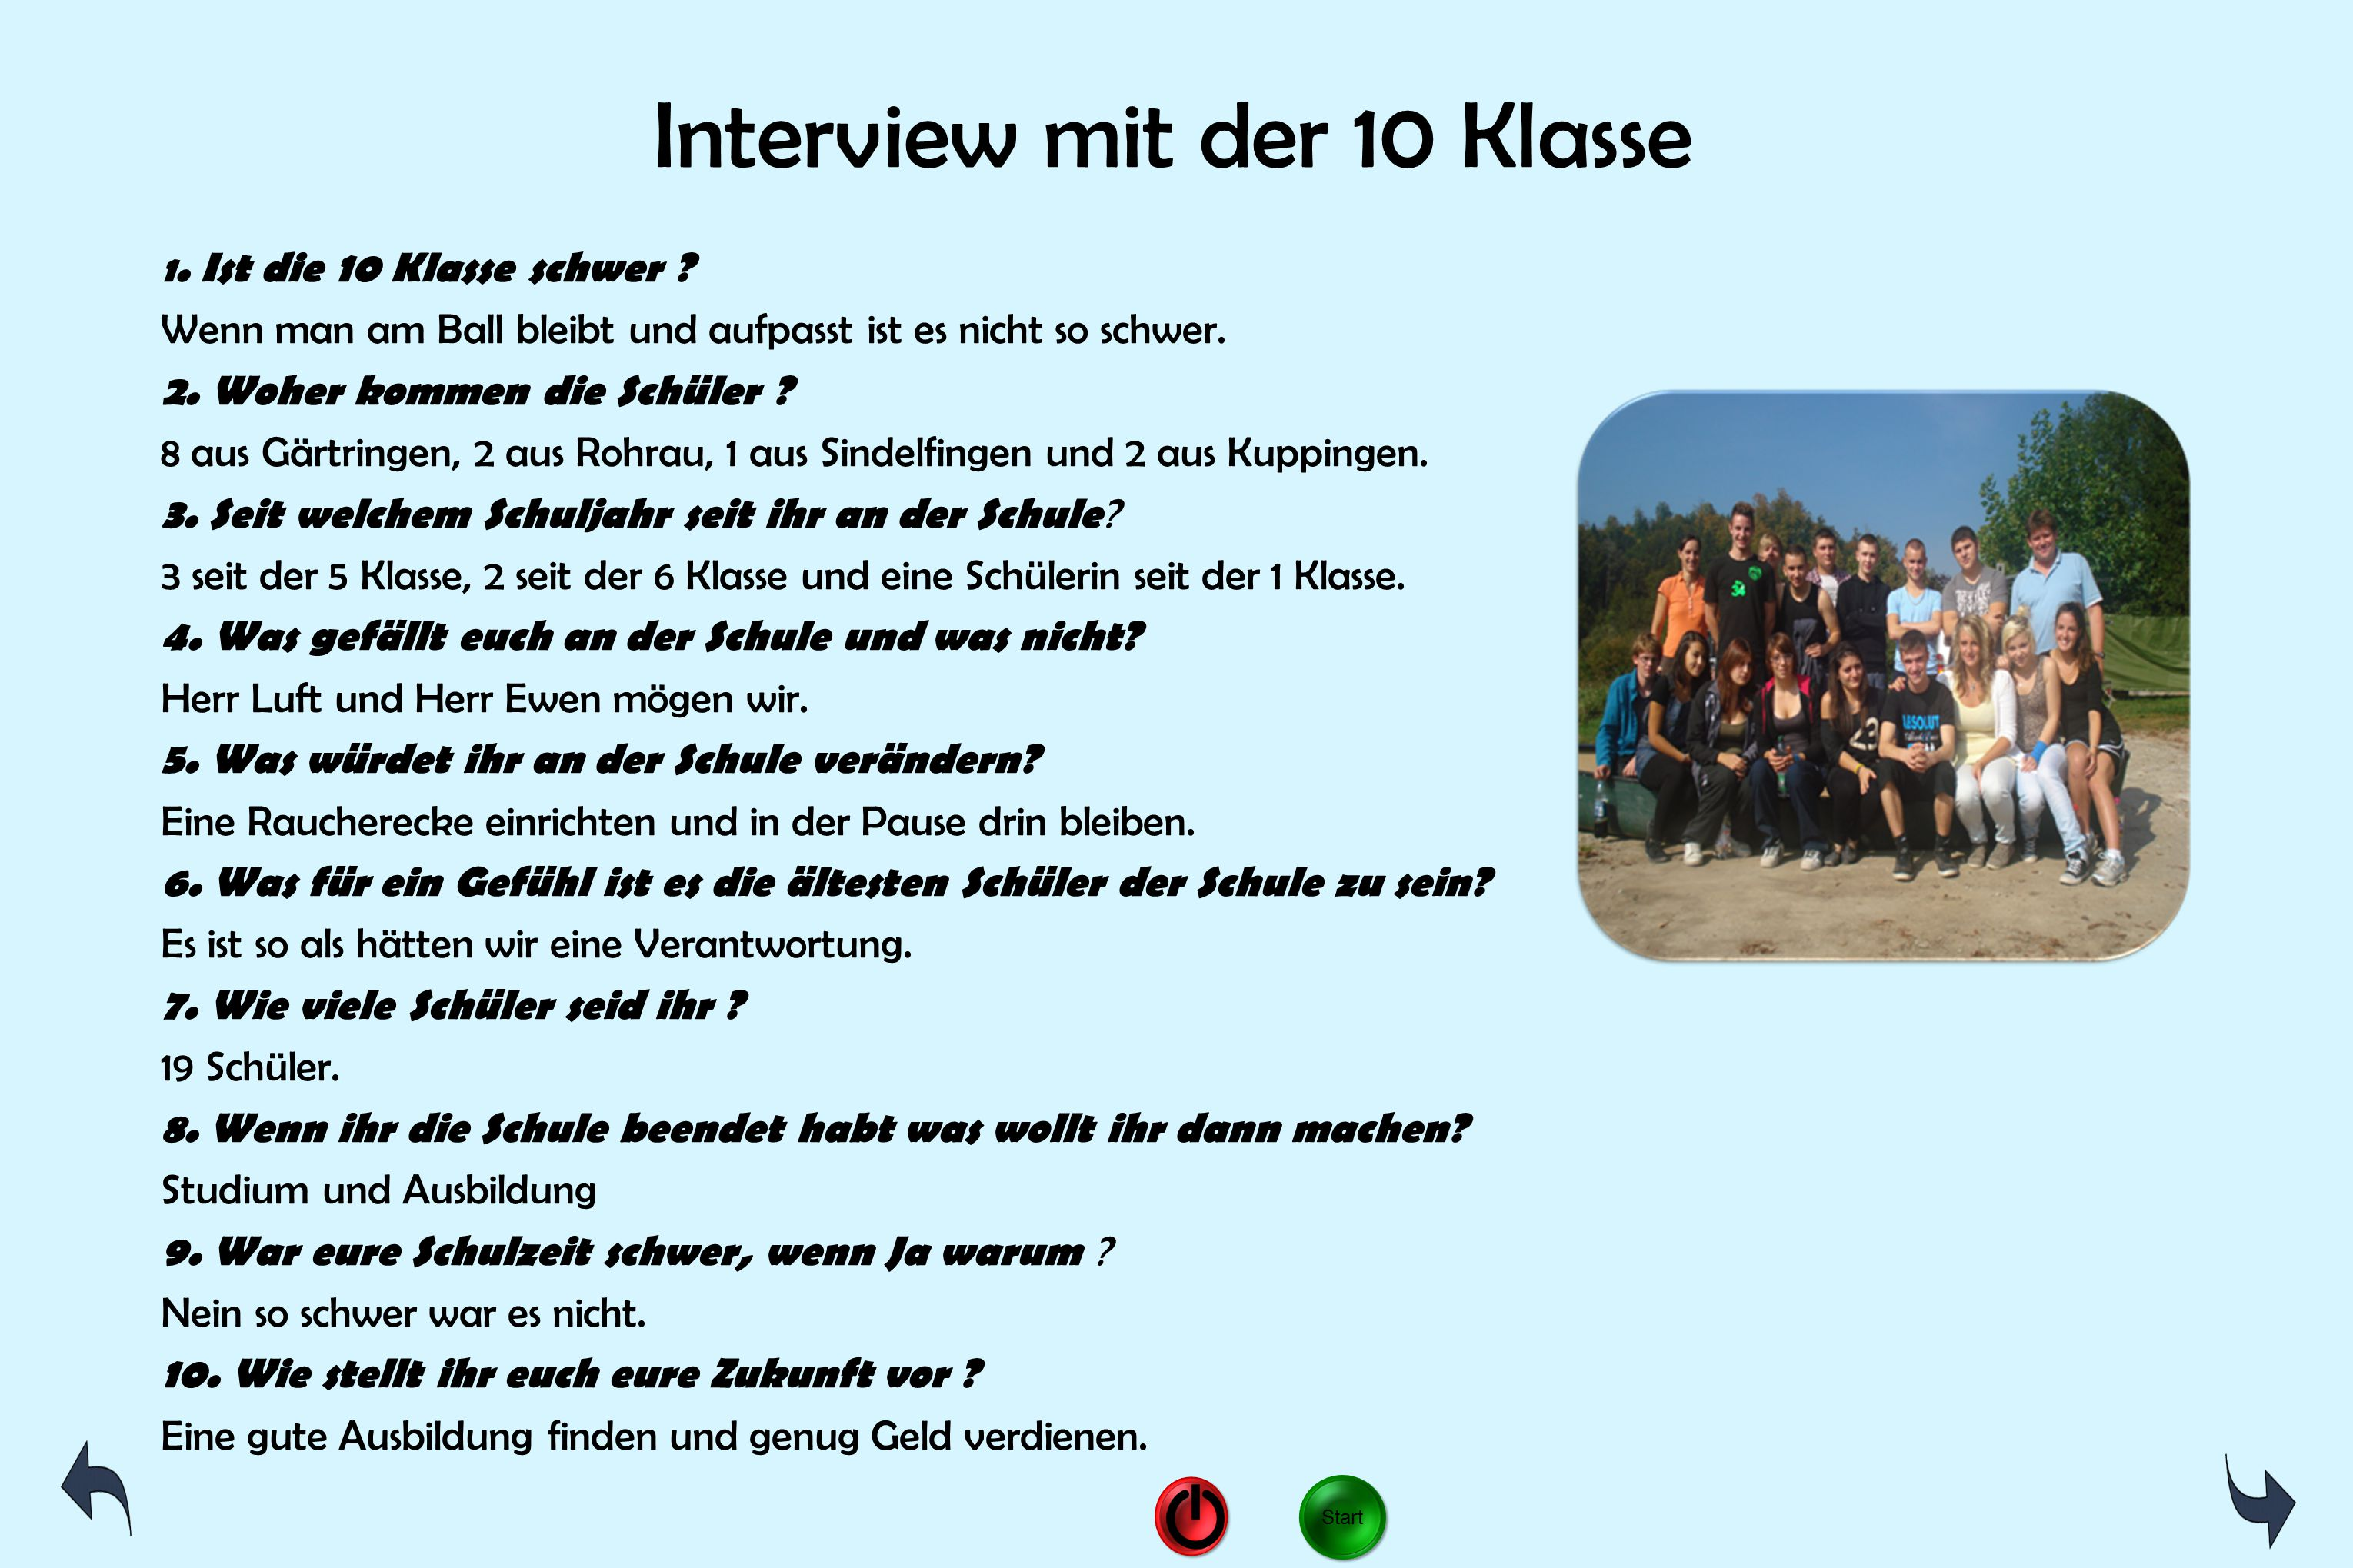 Interview mit der 10 Klasse